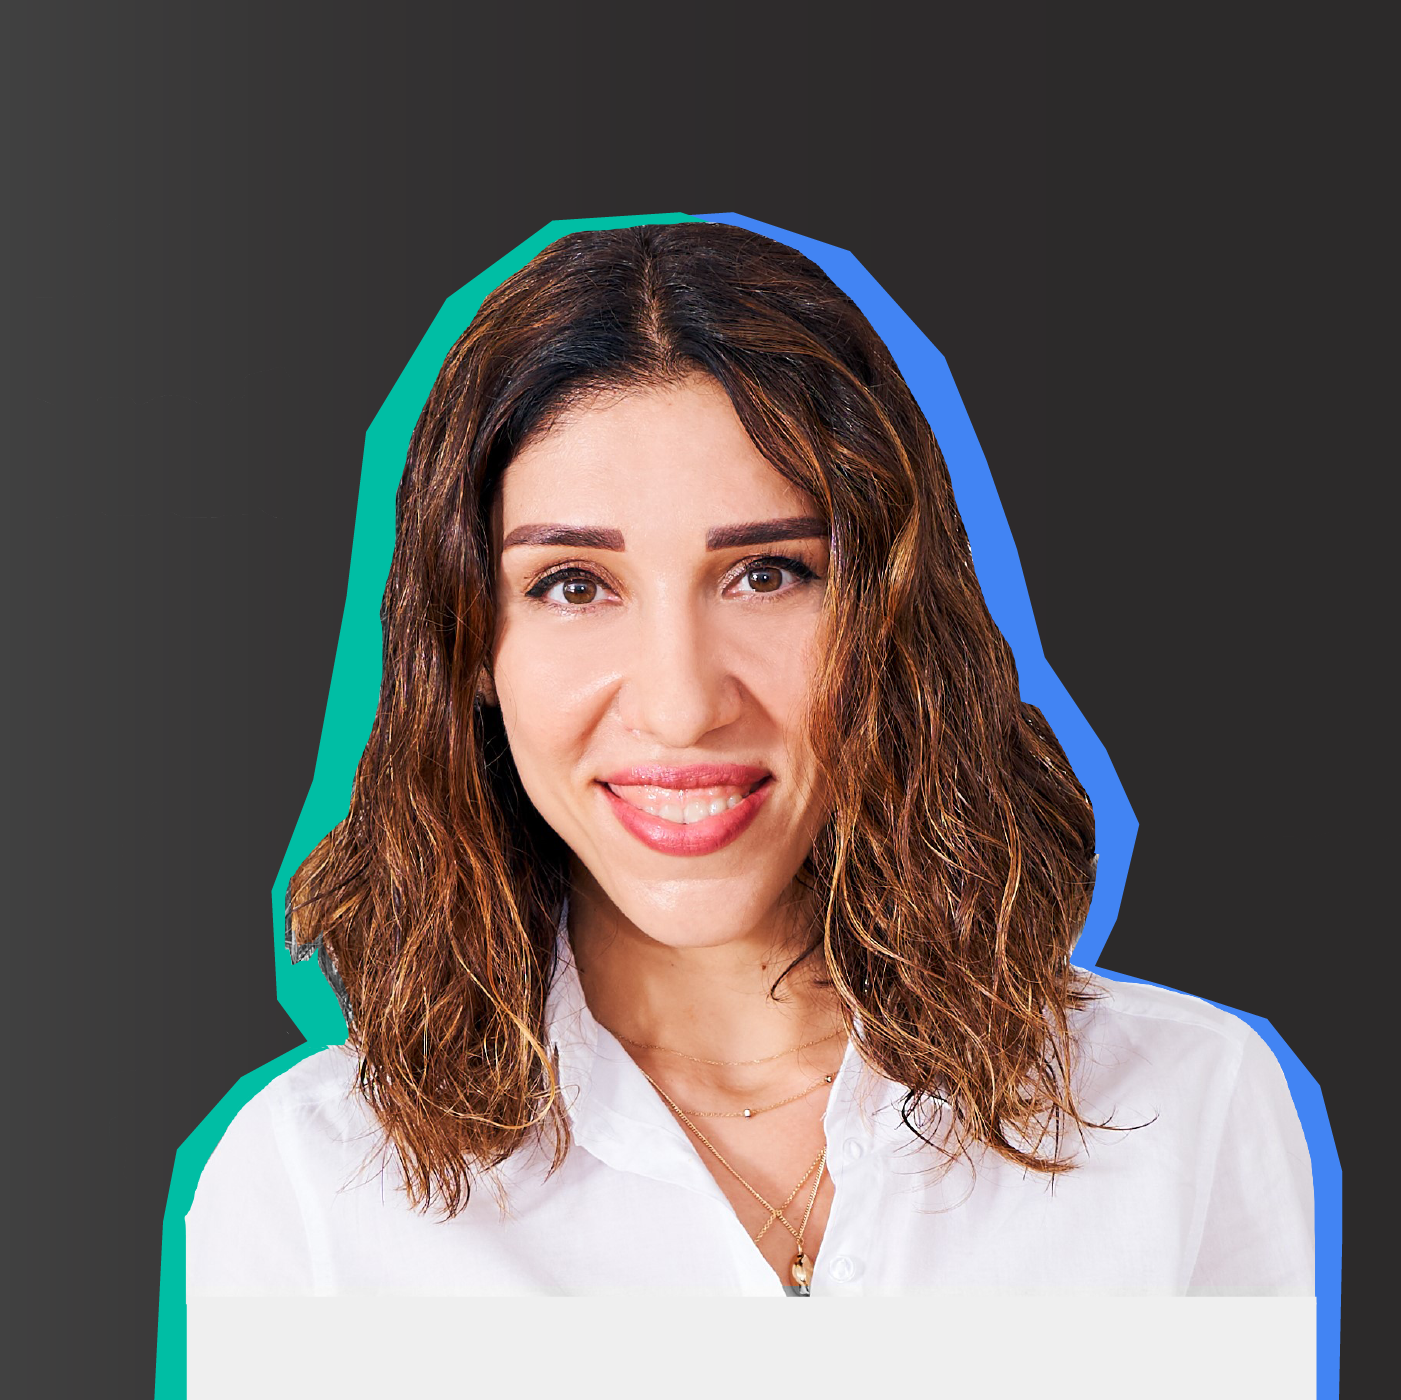 Hande Cilingir, co-founder and CEO of Insider